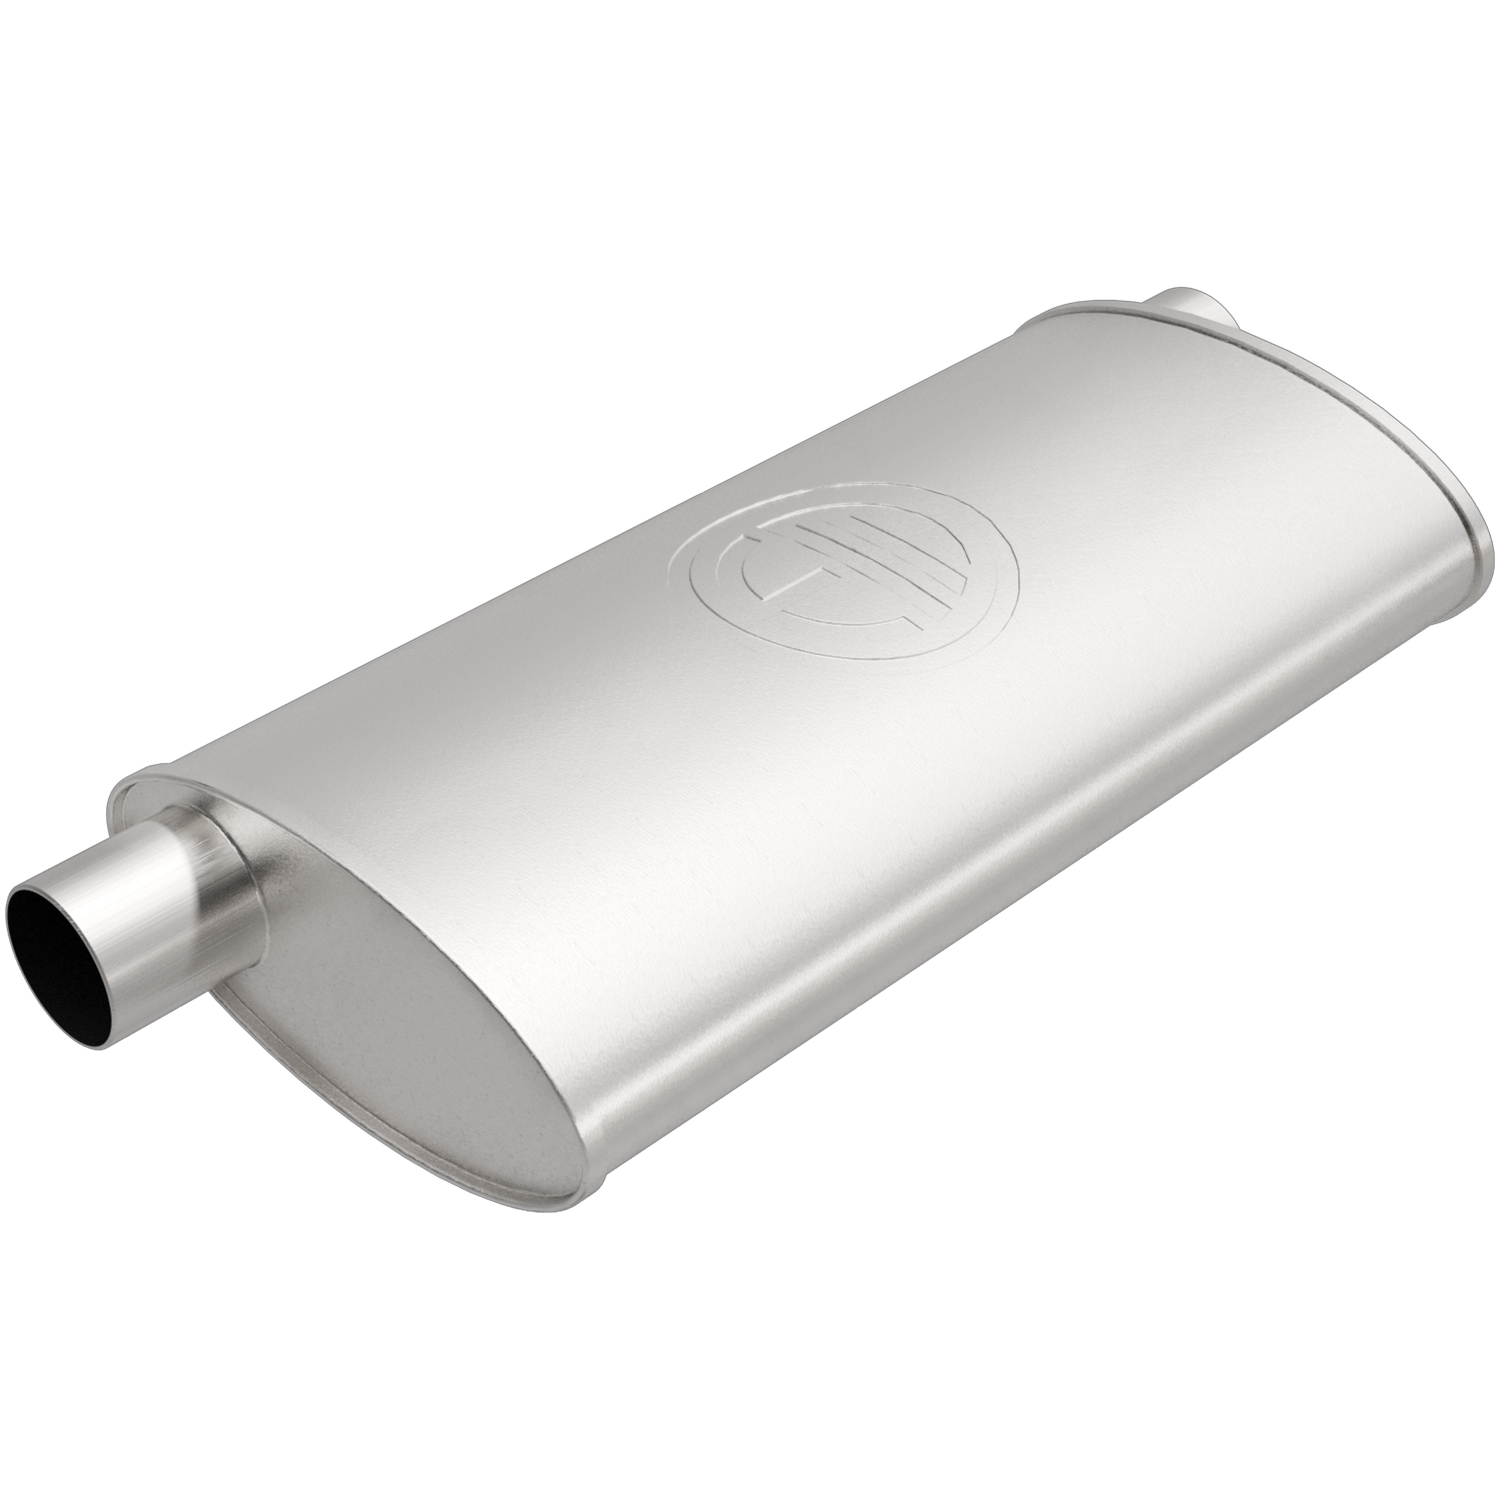 100-1775 Bosal USA Exhaust Muffler Aluminized Steel Case